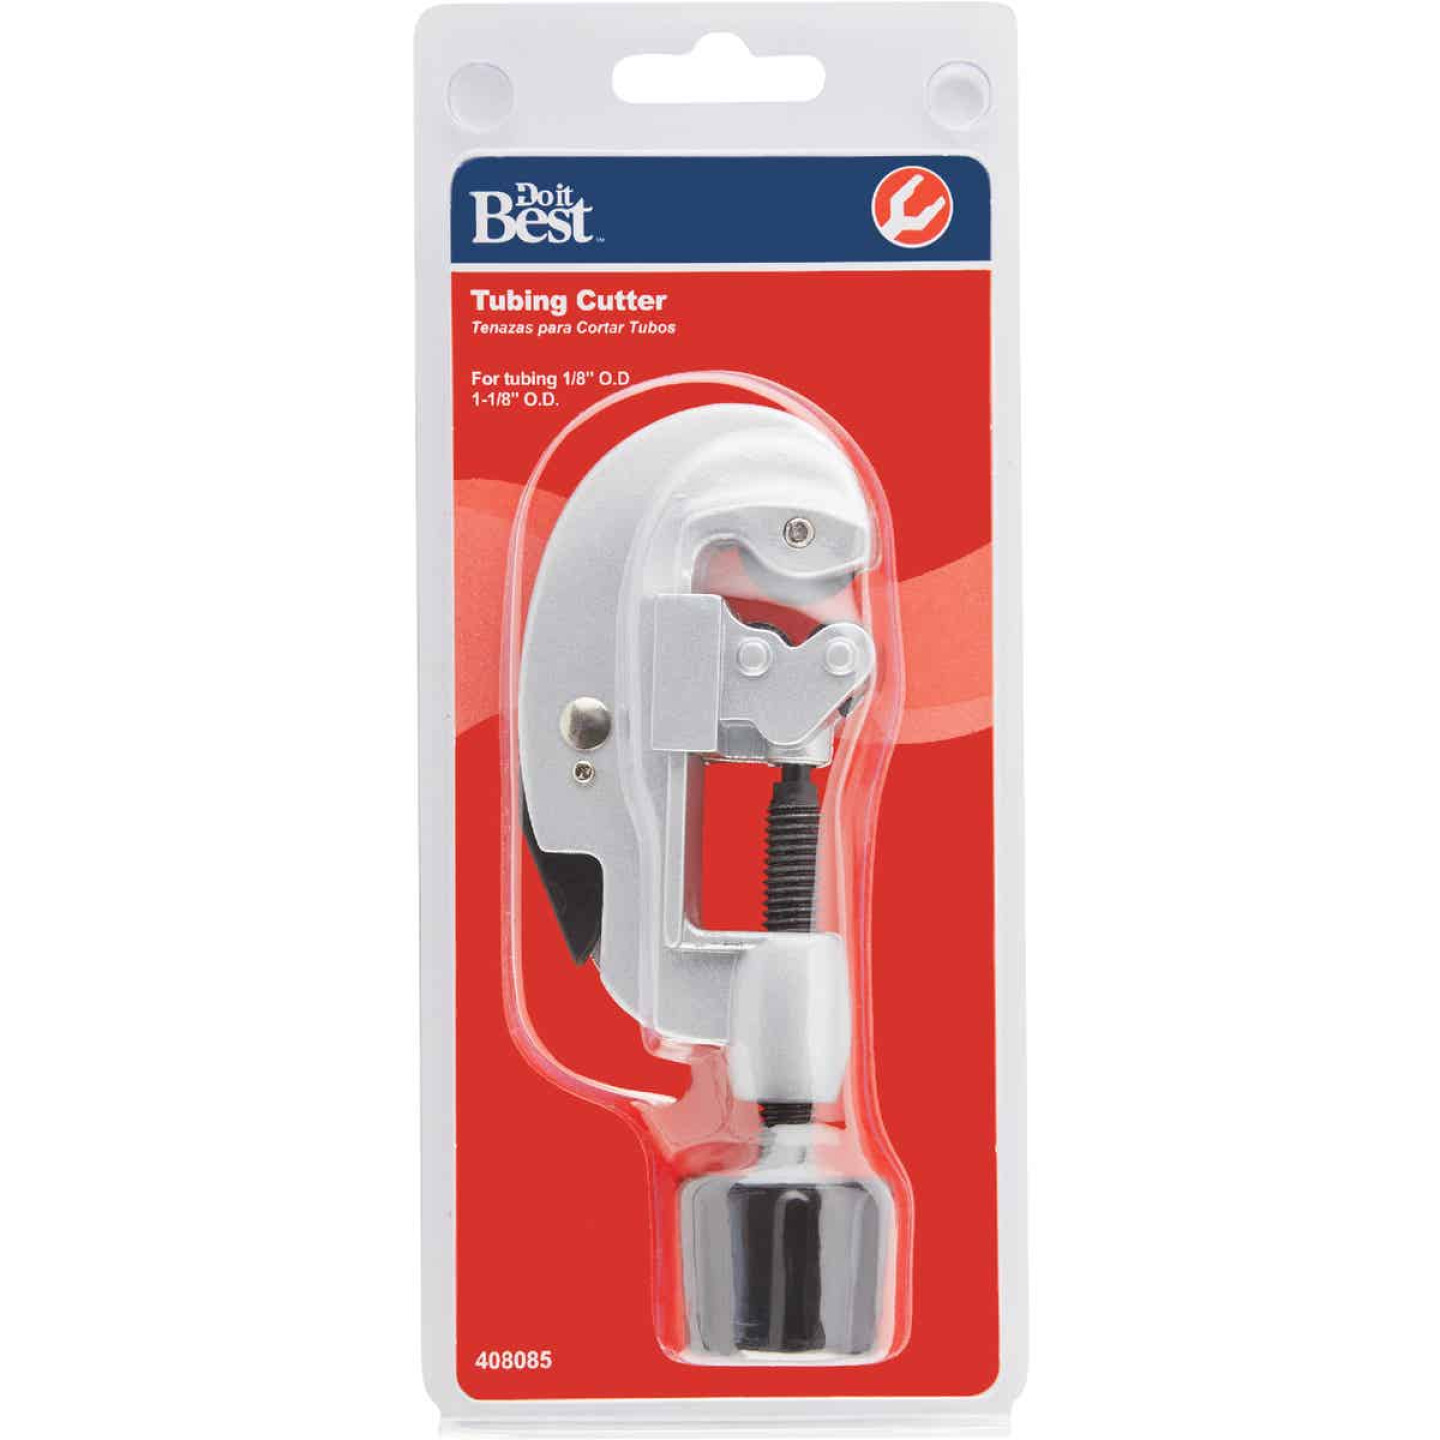 Do it 1/8 In. to 1-1/8 In. Copper & Aluminum Tubing Cutter Image 2